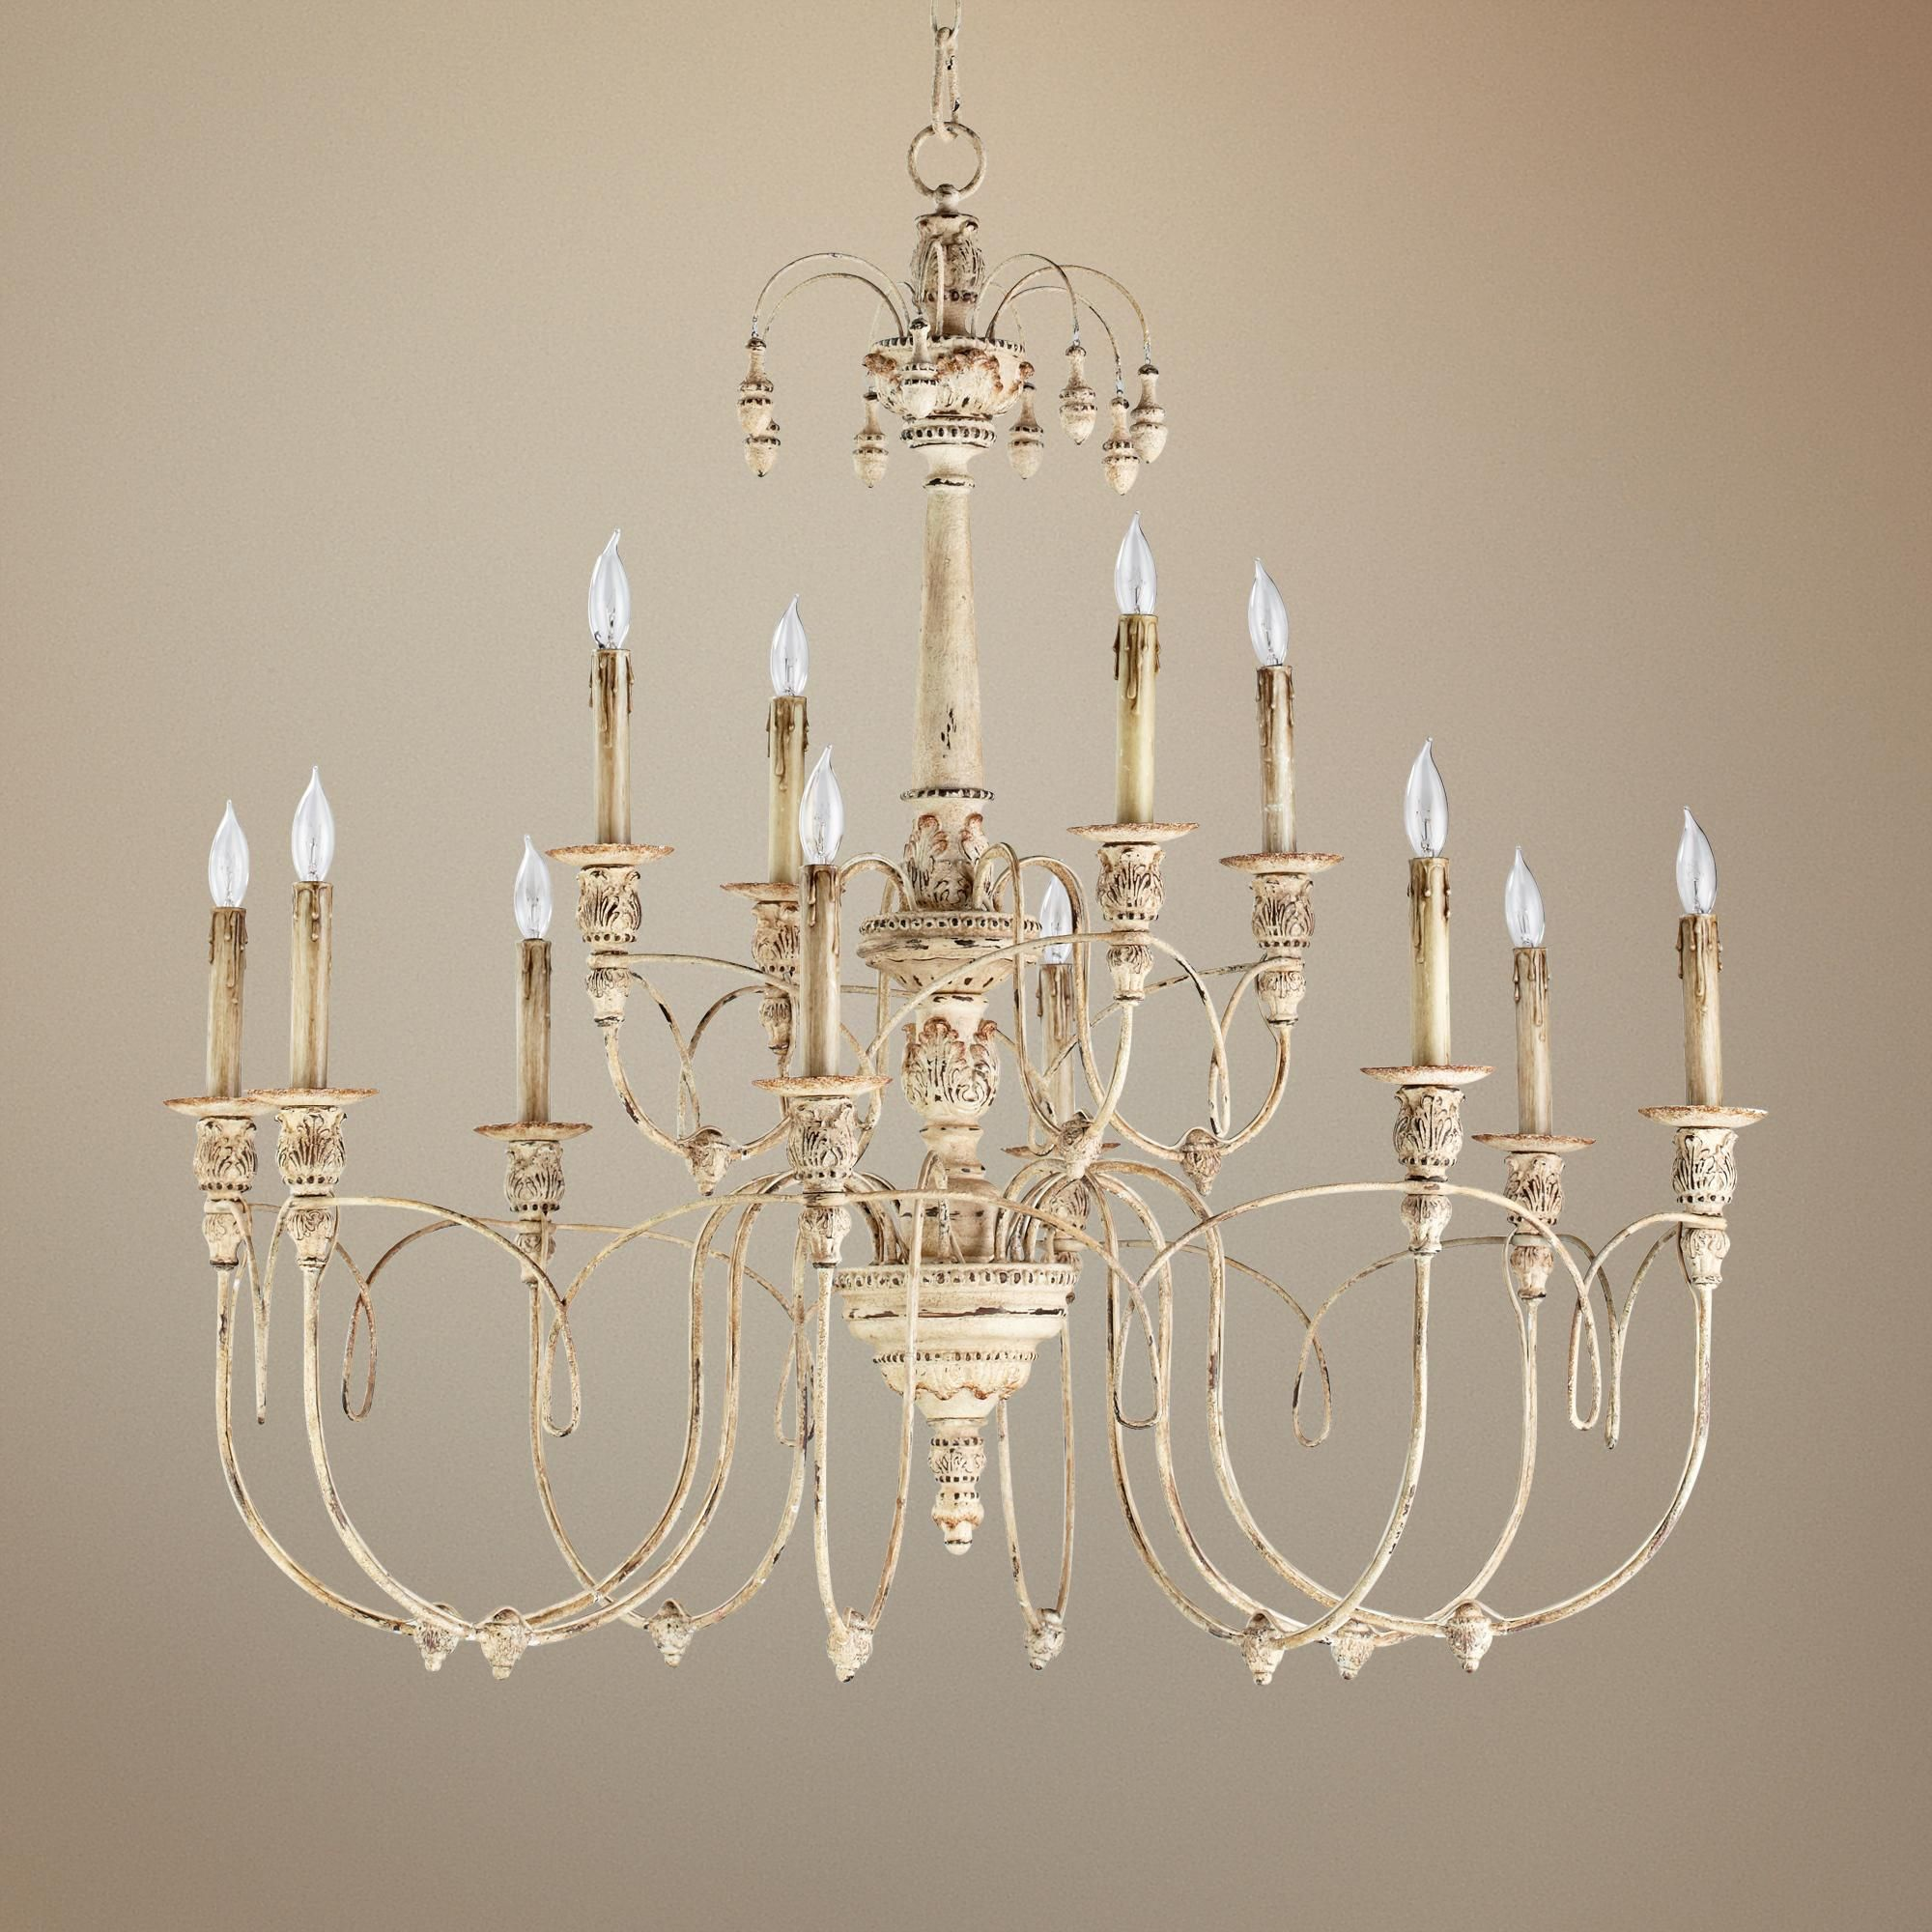 Quorum Salento 12 Light 39 Wide Parisian White Chandelier U6570 Lamps Plus White Chandelier Chandelier Chandelier Lighting